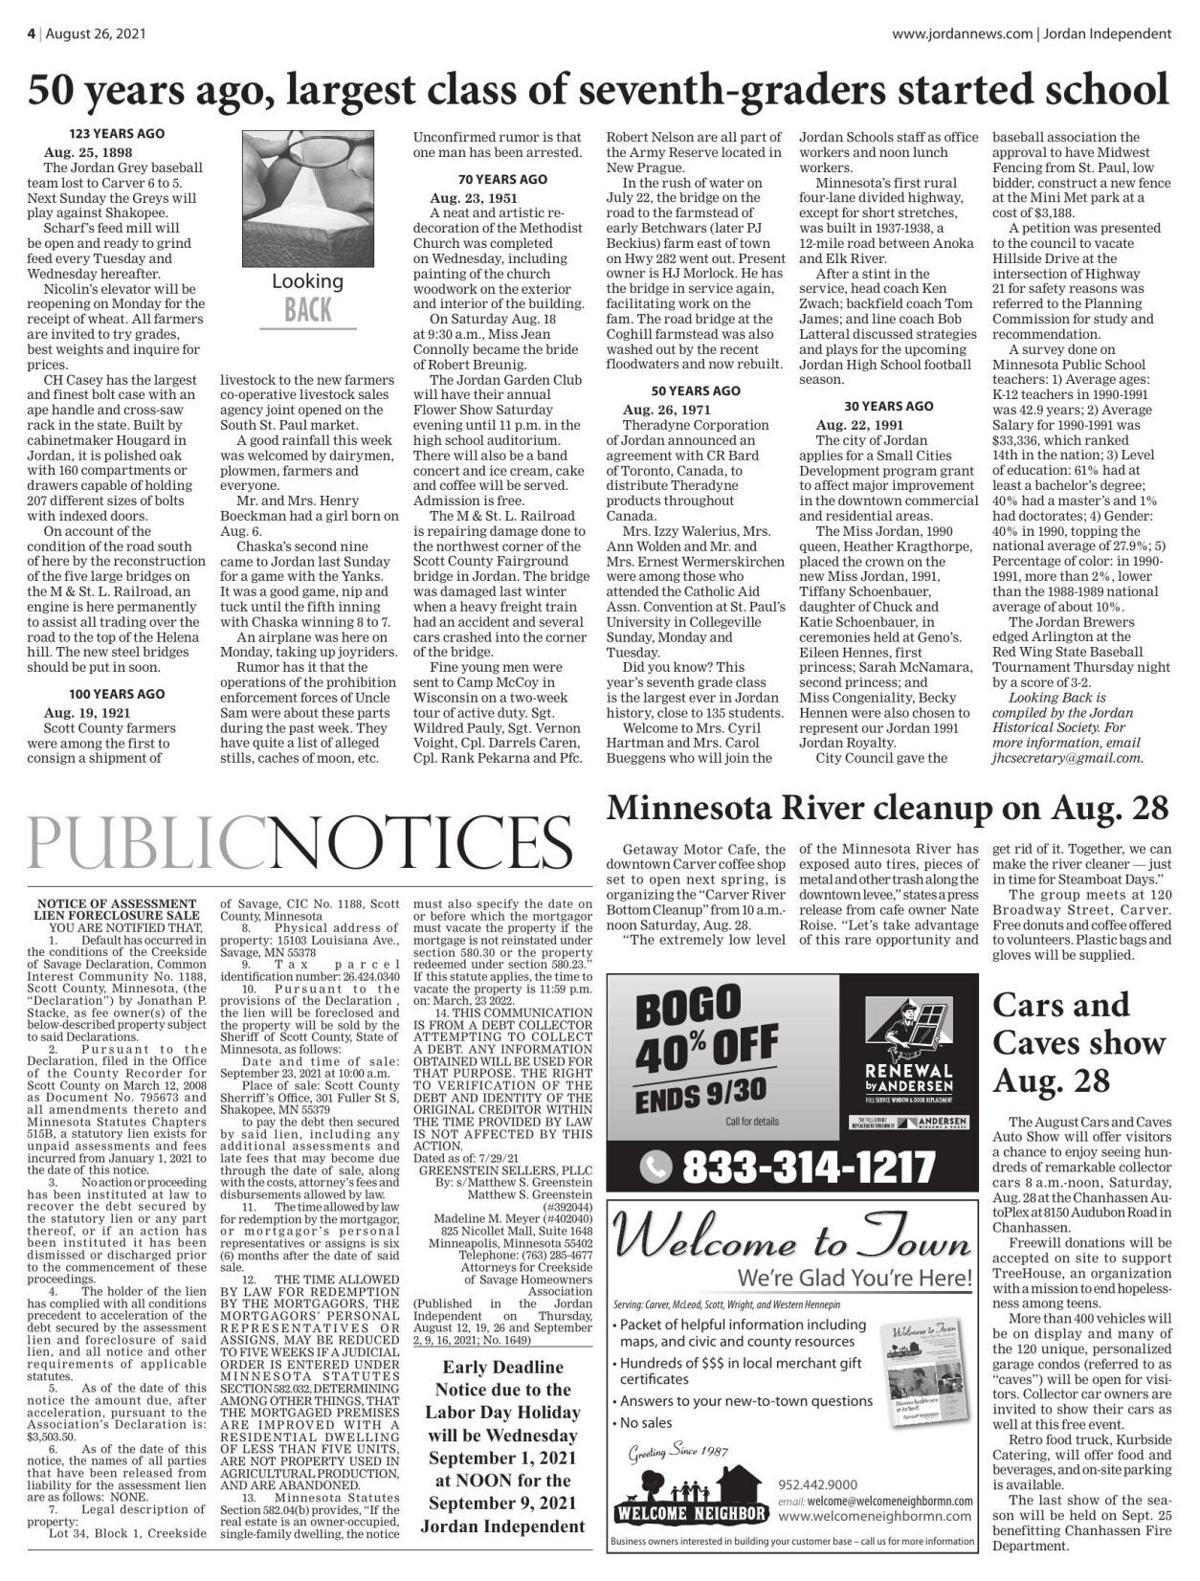 Public notices from the August 26, 2021 Jordan Independent